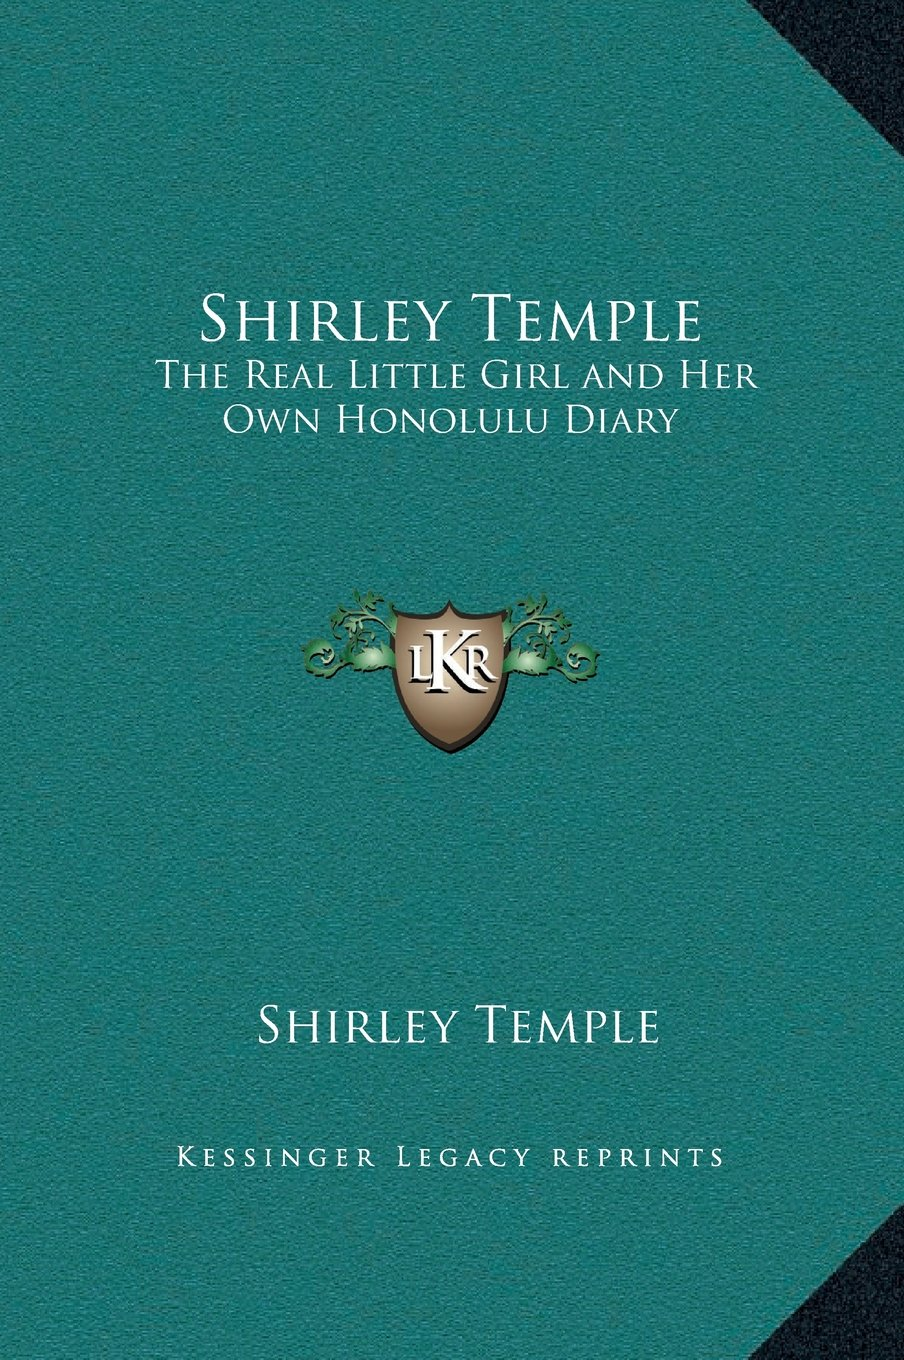 Buy Shirley Temple: The Real Little Girl and Her Own Honolulu Diary Book  Online at Low Prices in India | Shirley Temple: The Real Little Girl and Her  Own ...